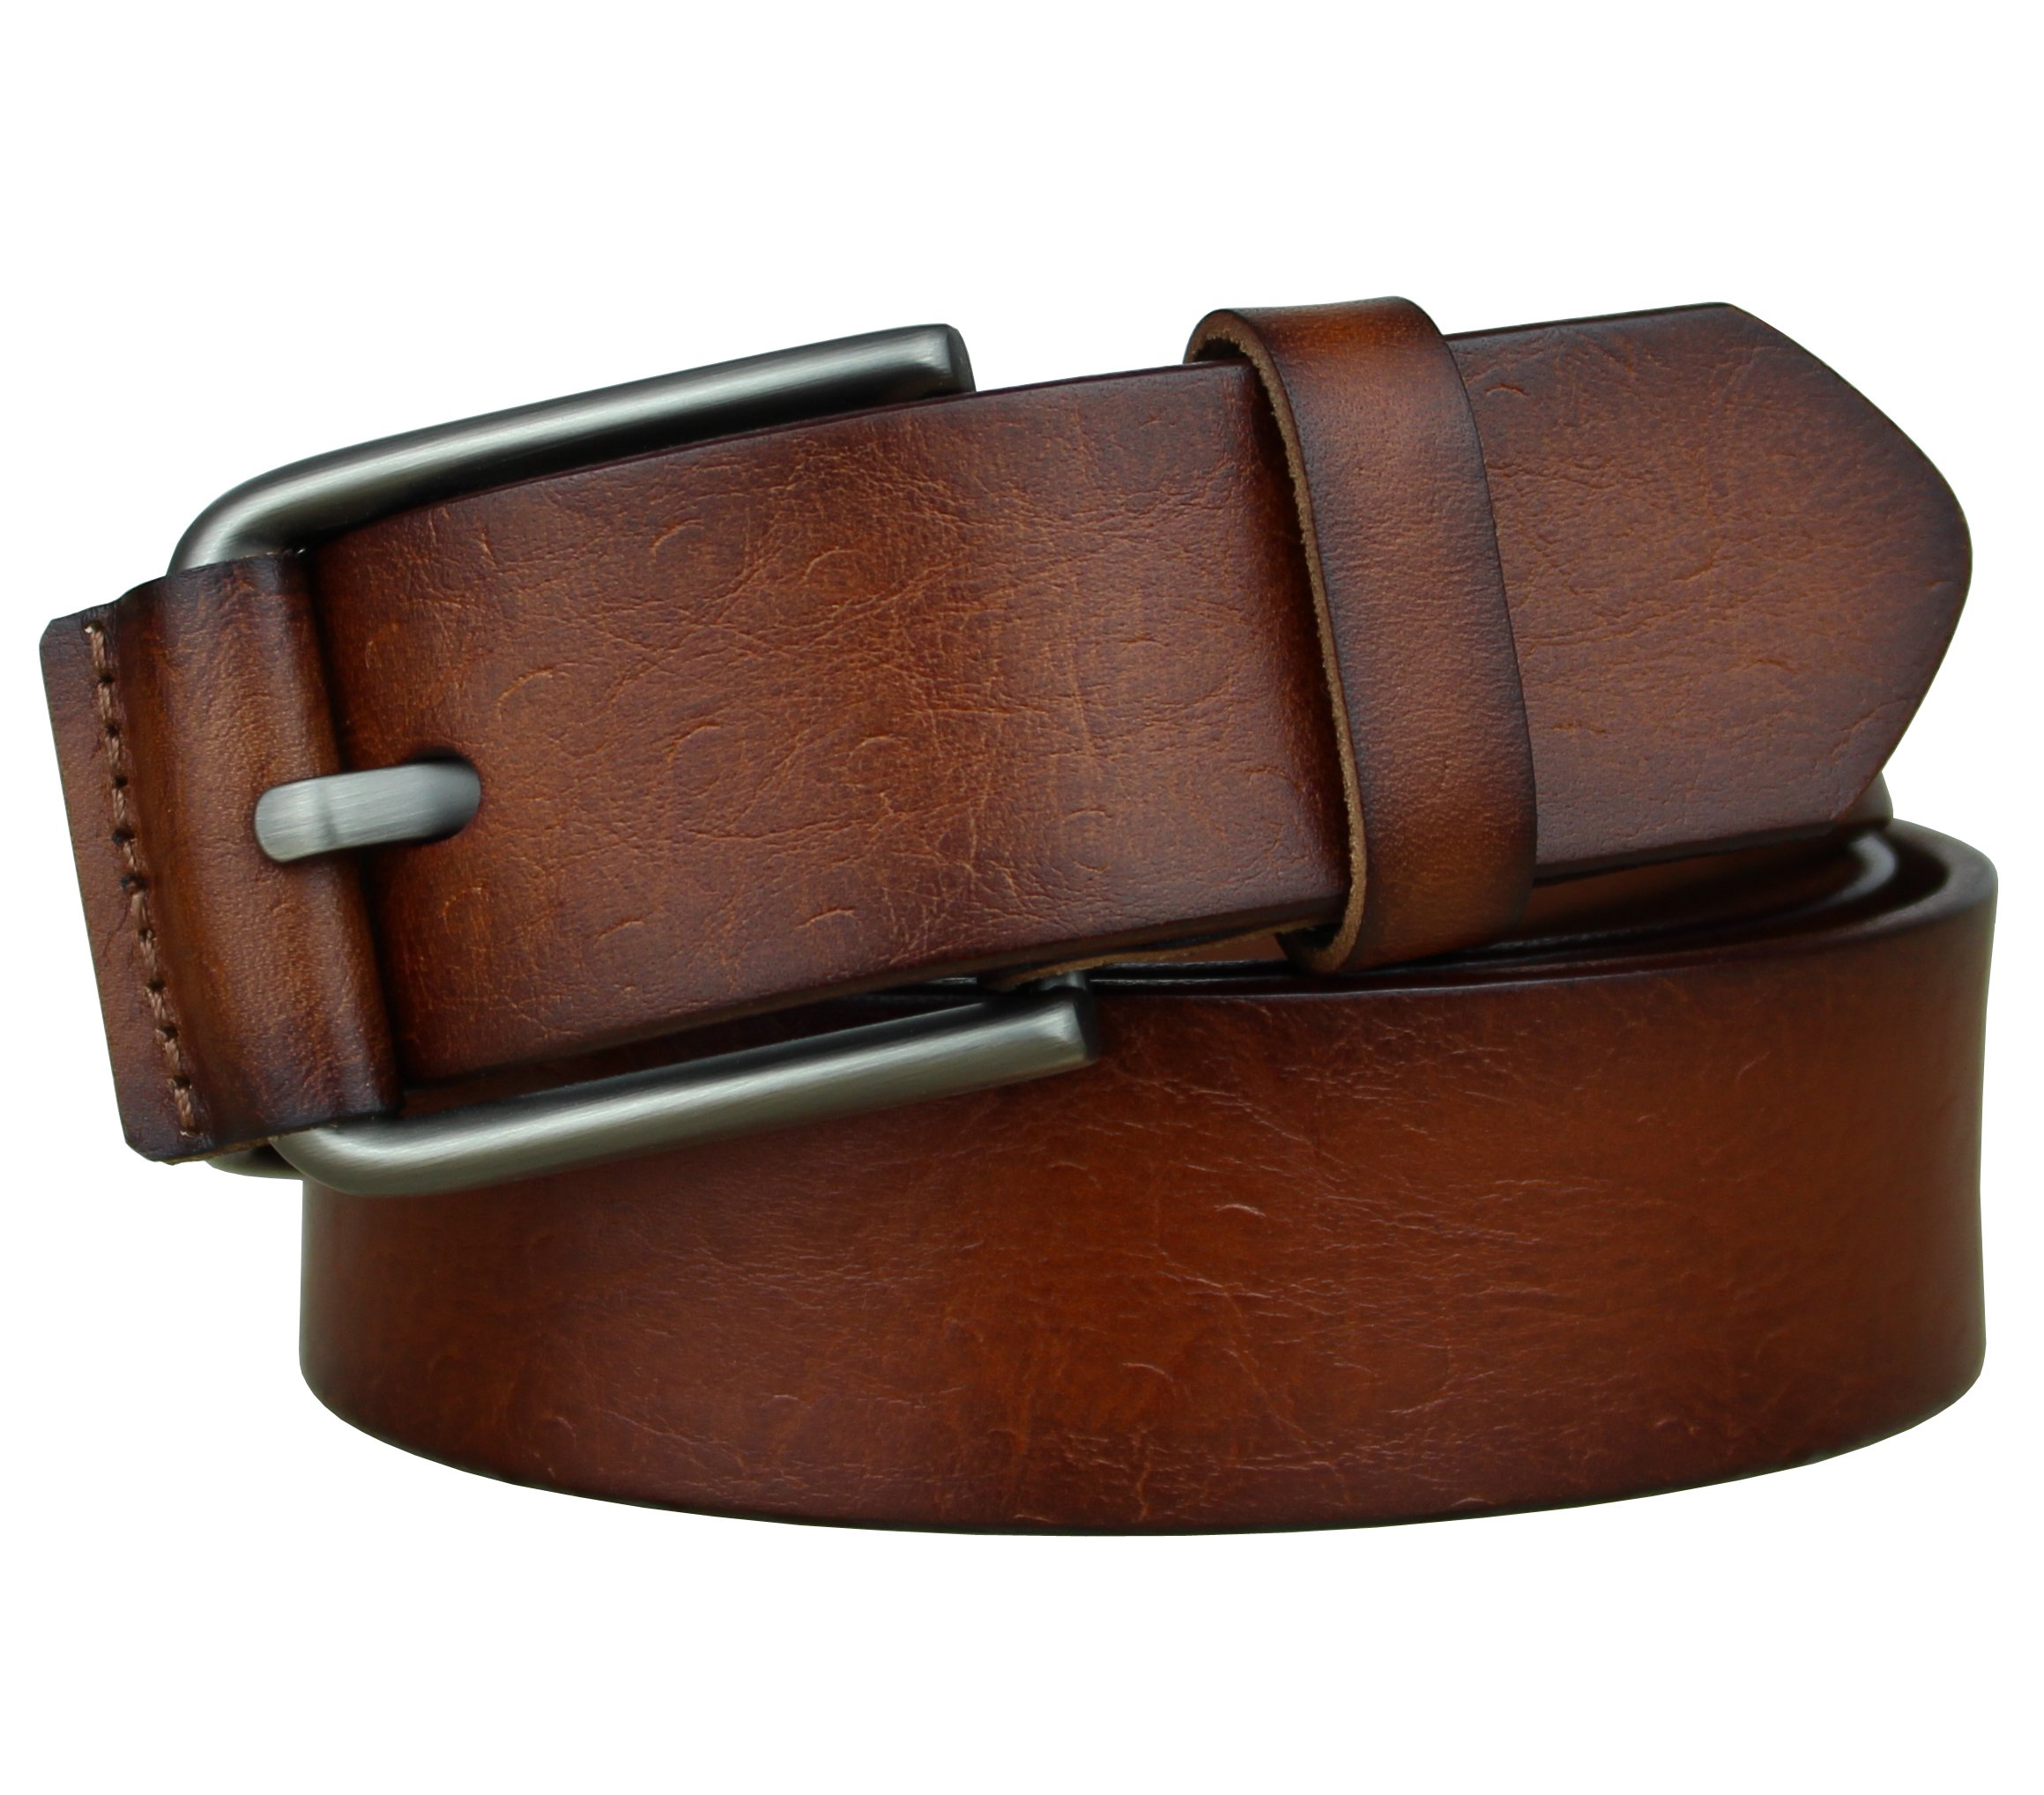 Bullko Men's Casual Genuine Leather Dress Belt For Jeans 1 1/2 Brown 38-40inch